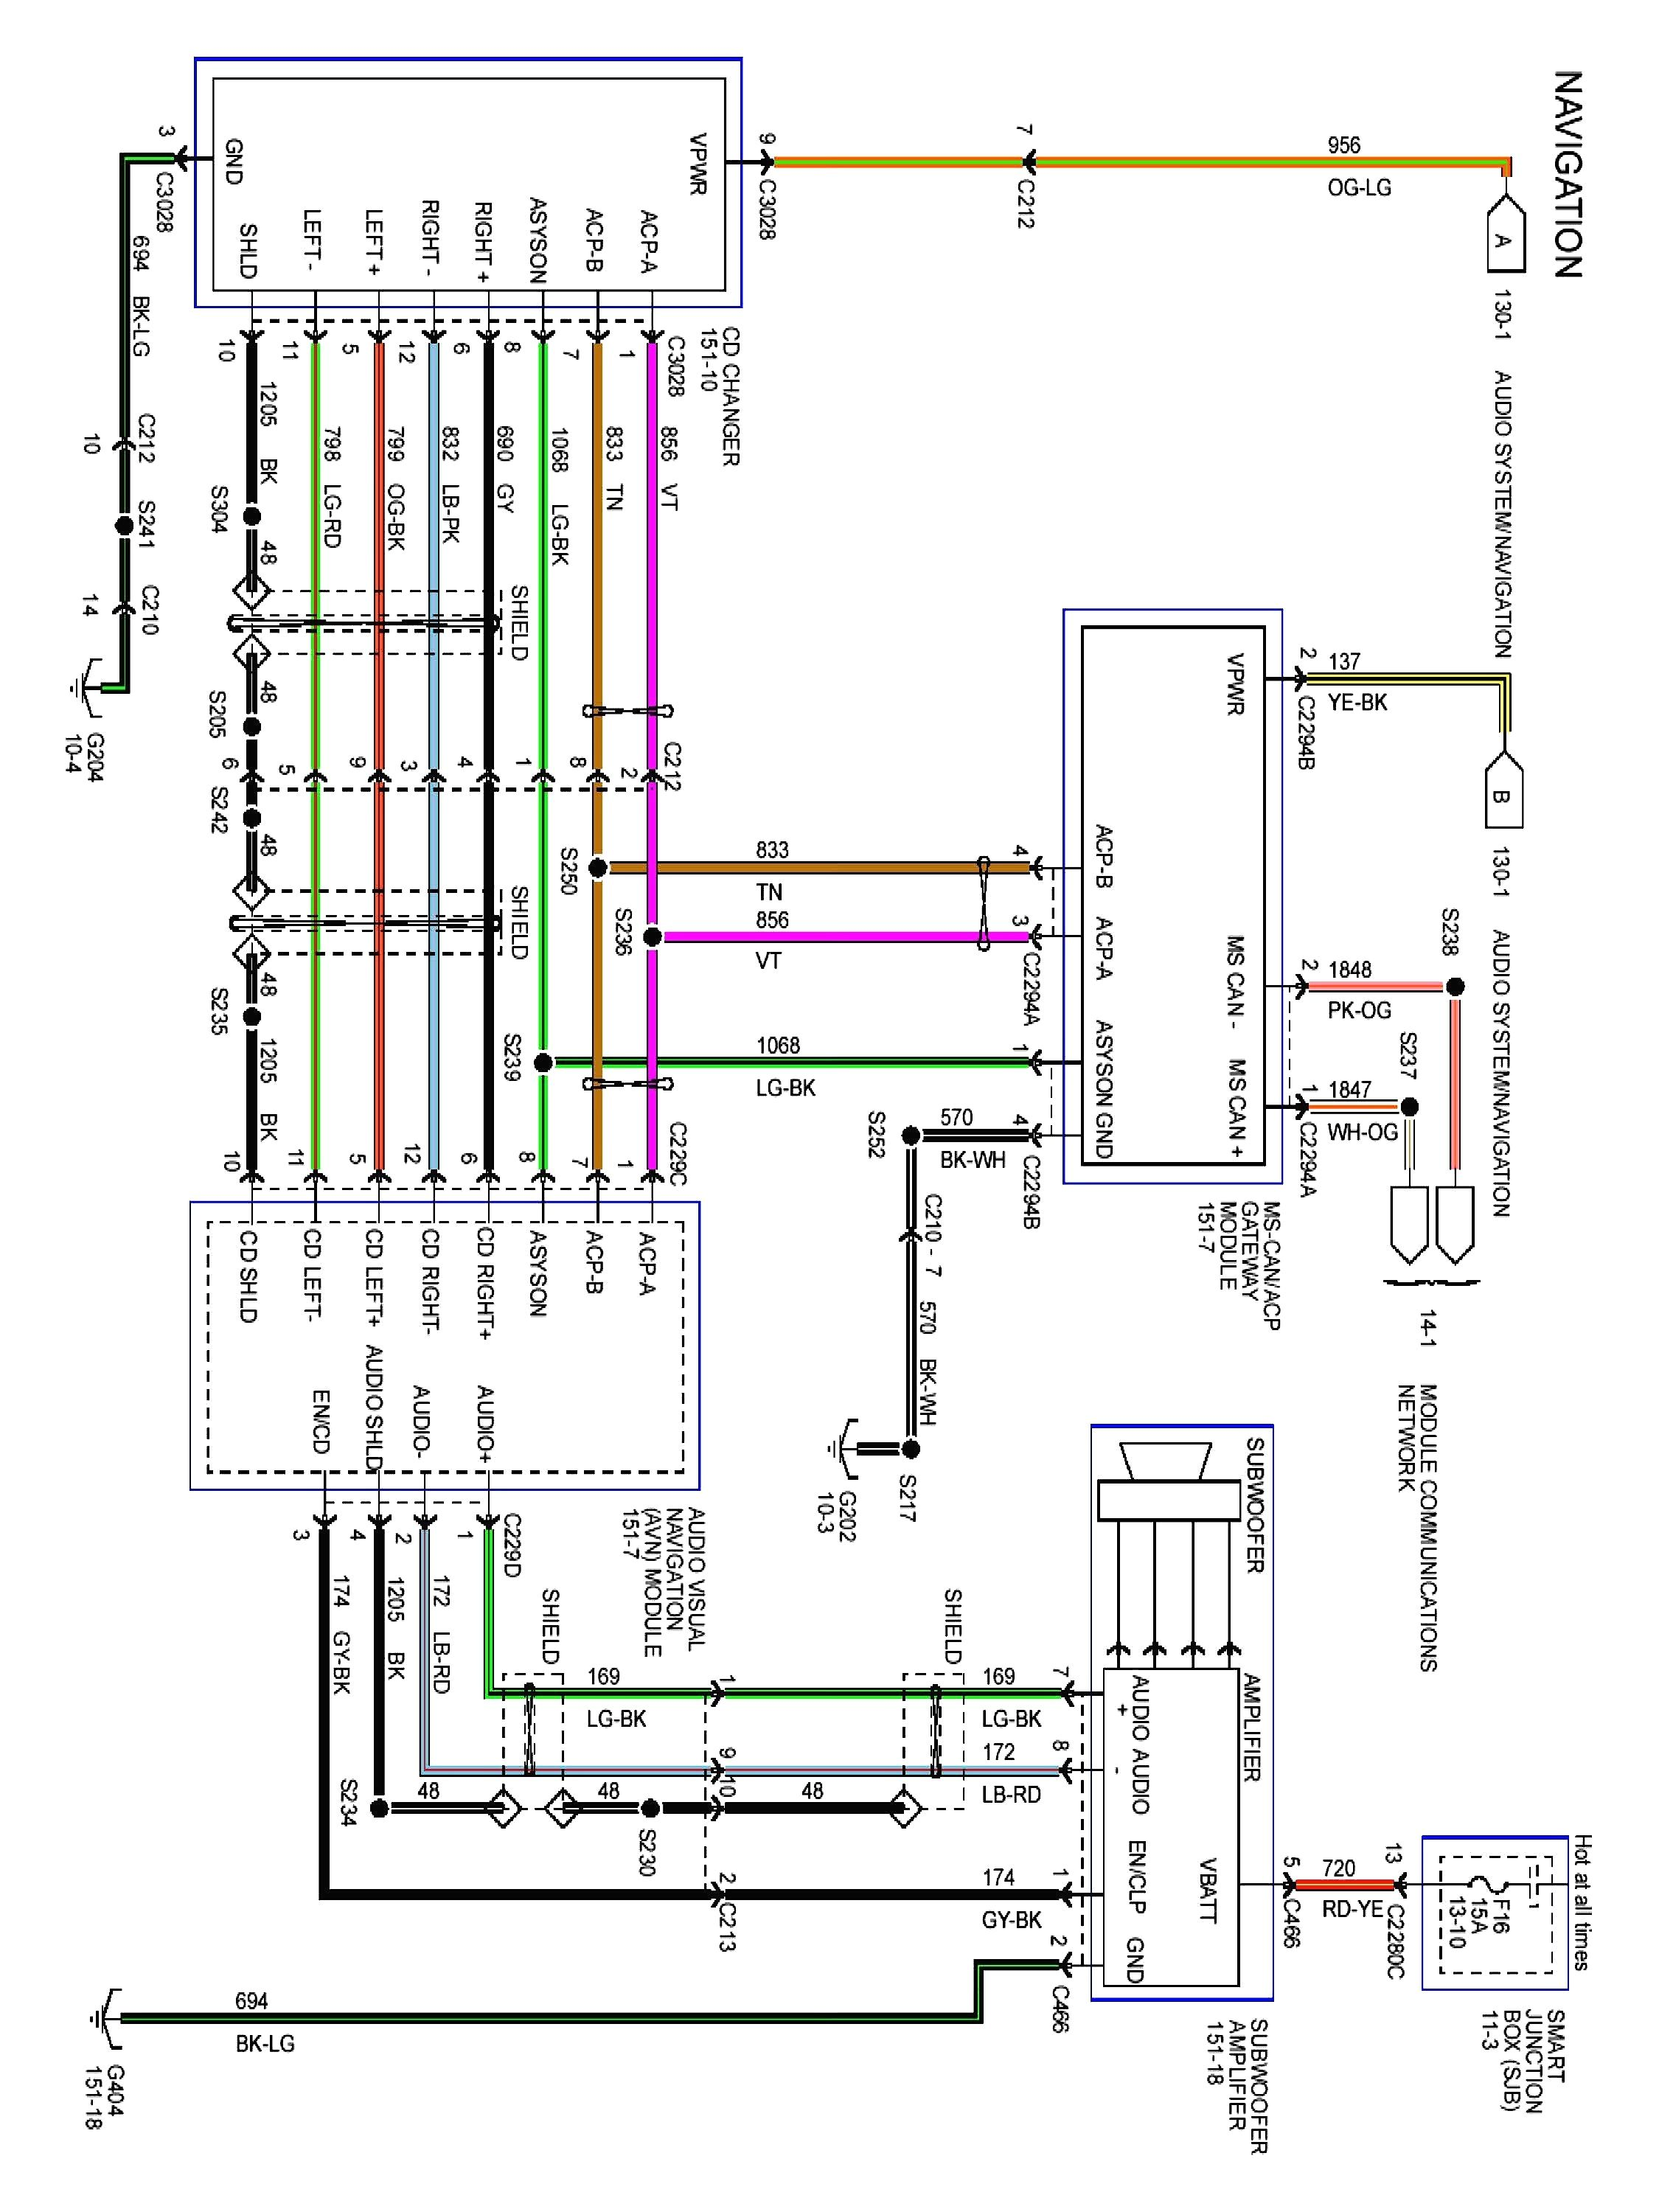 Wiring Diagram For 2003 Ford Ranger | Wiring Diagrams on 2002 ford explorer sport trac wiring schematic, 2003 ford ranger neutral safety switch, 1999 ford windstar wiring schematic, 2010 ford flex wiring schematic, 2010 ford fusion wiring schematic, 2004 ford excursion wiring schematic, 2000 ford mustang wiring schematic, 2003 ford ranger battery, 1998 ford windstar wiring schematic, 2007 ford taurus wiring schematic, 2001 ford mustang wiring schematic, 2008 ford f-150 wiring schematic, 1979 ford f150 wiring schematic, 2003 ford ranger electrical, 2002 ford f-250 wiring schematic, 2003 ford ranger steering, 2003 ford ranger horn relay, 2003 ford ranger gauges, 2003 ford ranger brake light, 2003 ford ranger fuel pump relay,